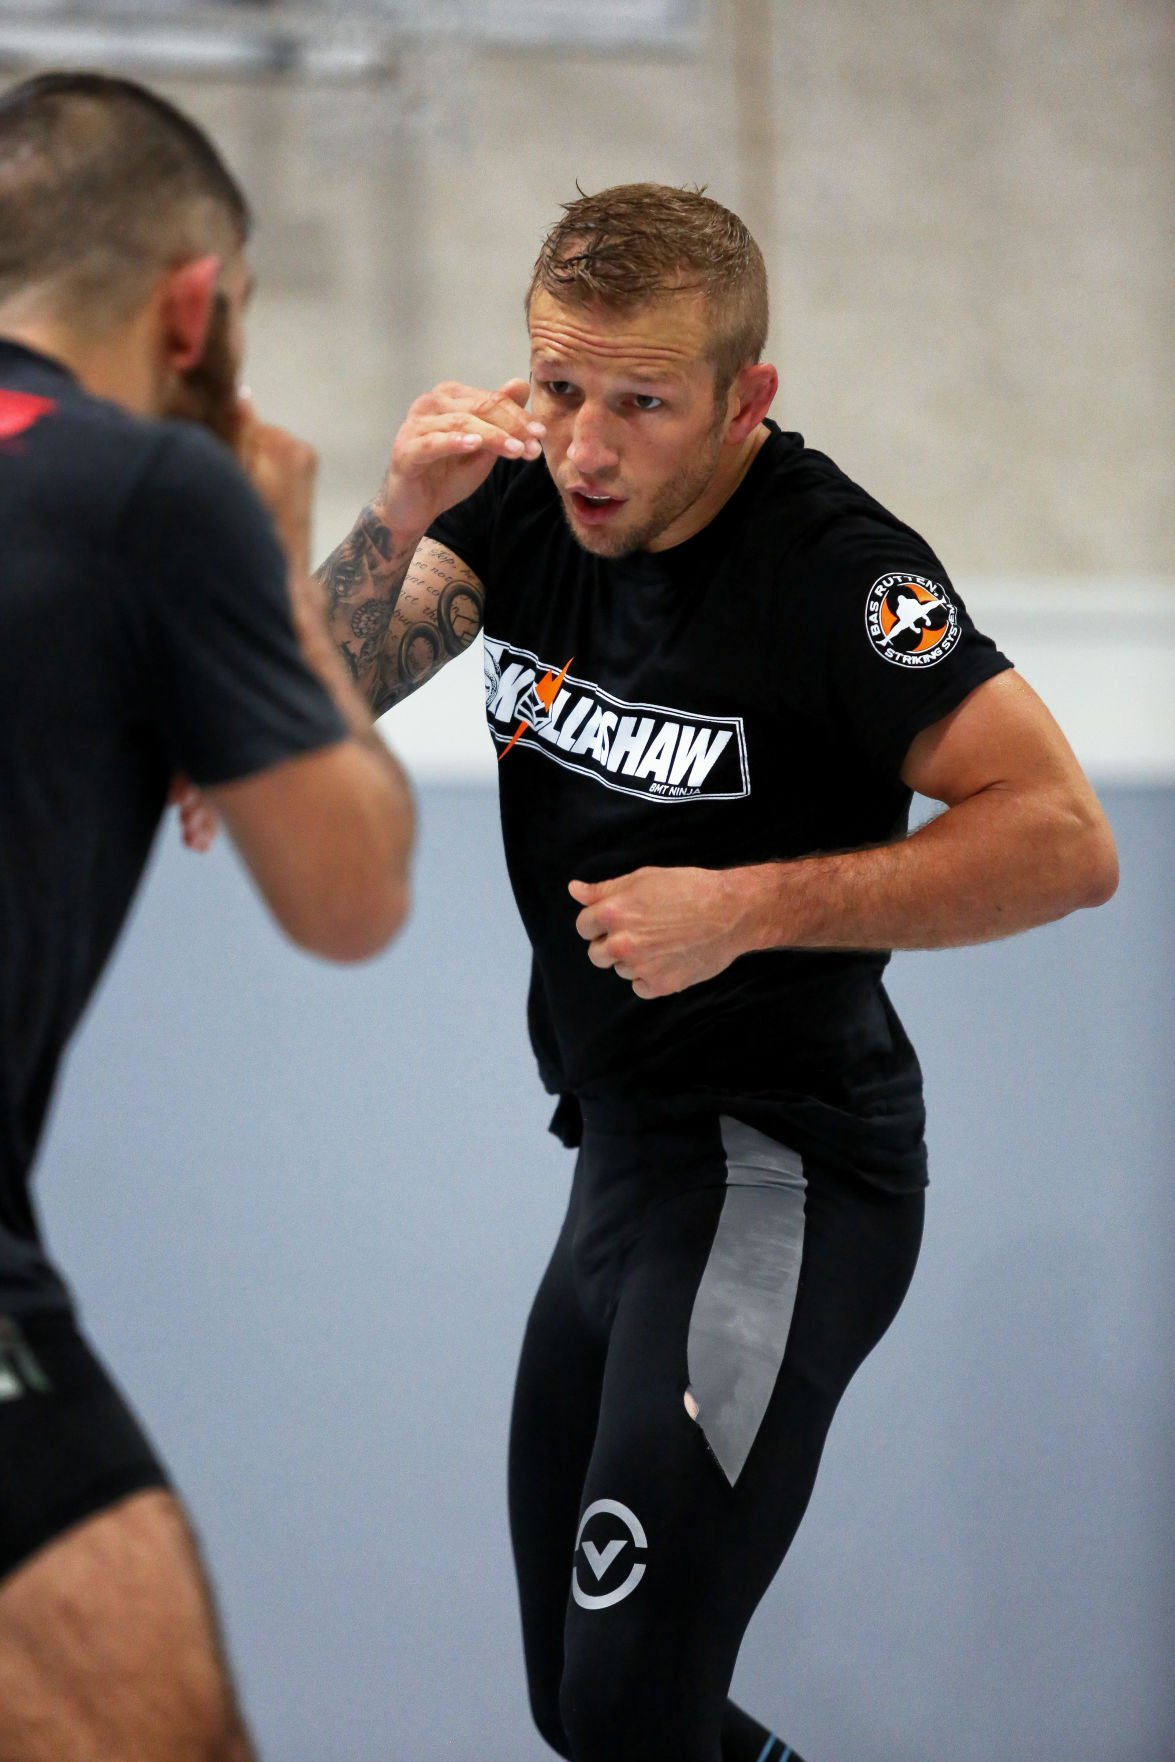 Dillashaw looks to add new title to resume